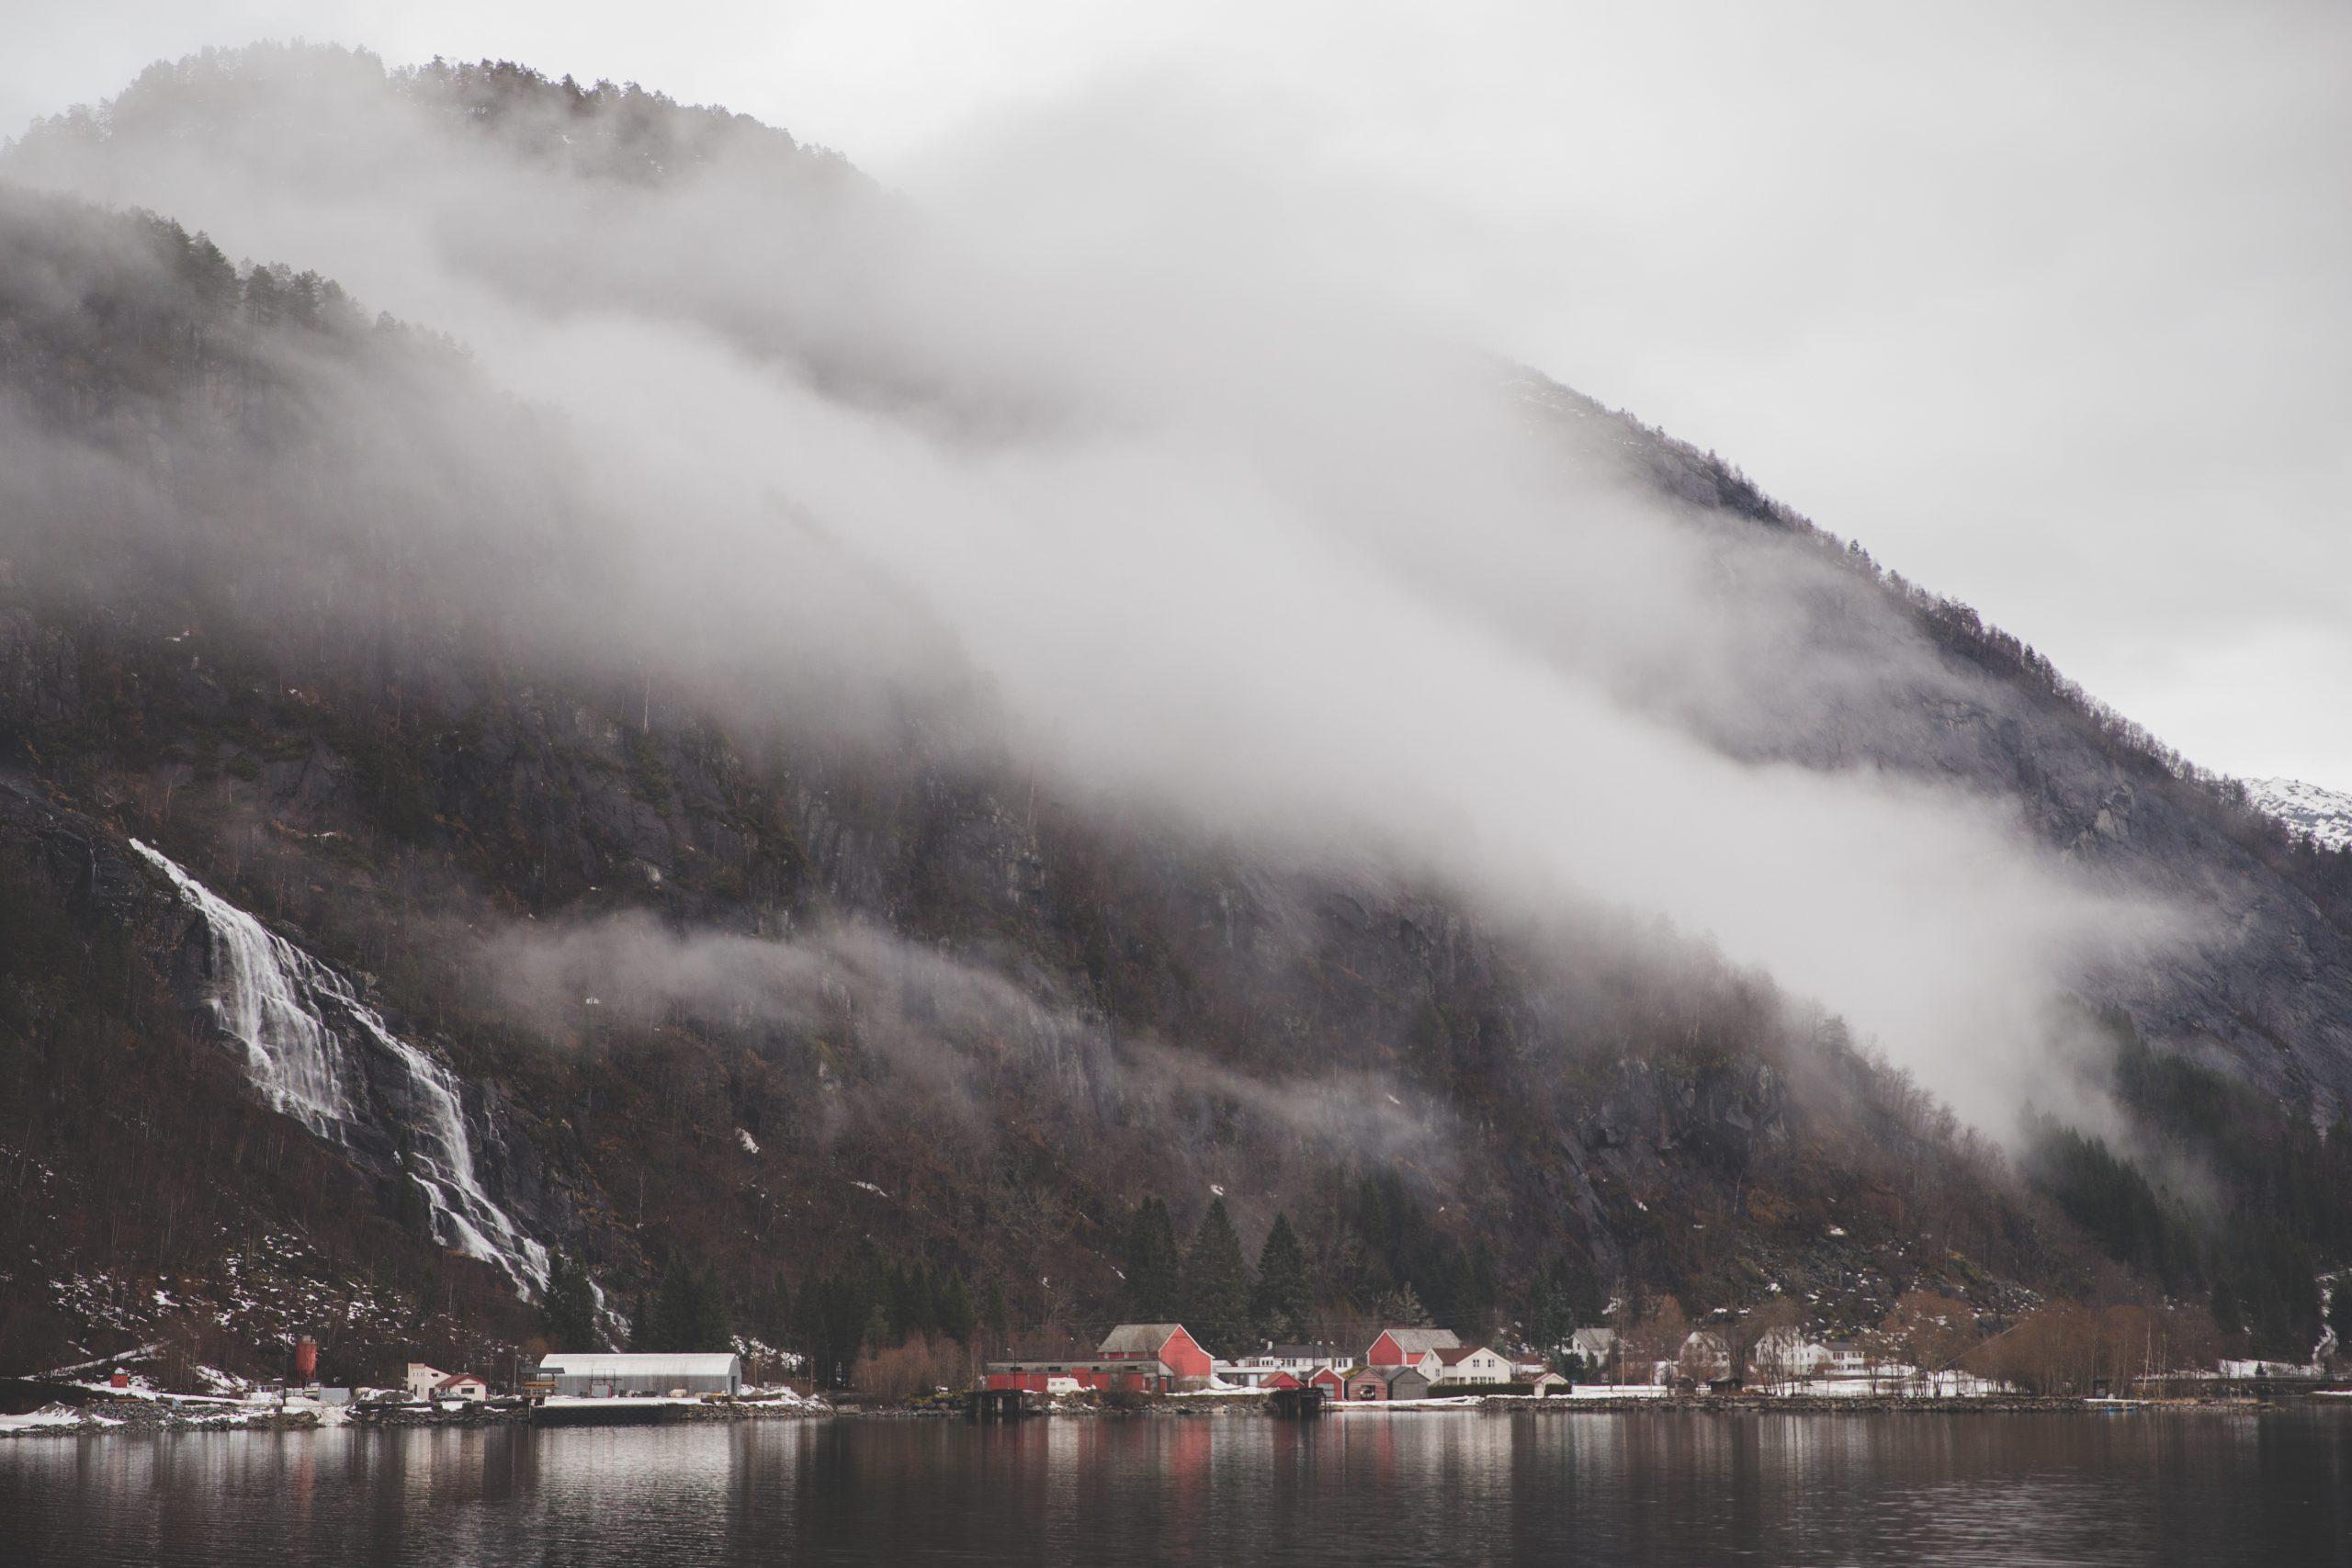 View of houses from the Rødne Fjord Cruise Boat with mountains and fog in the background